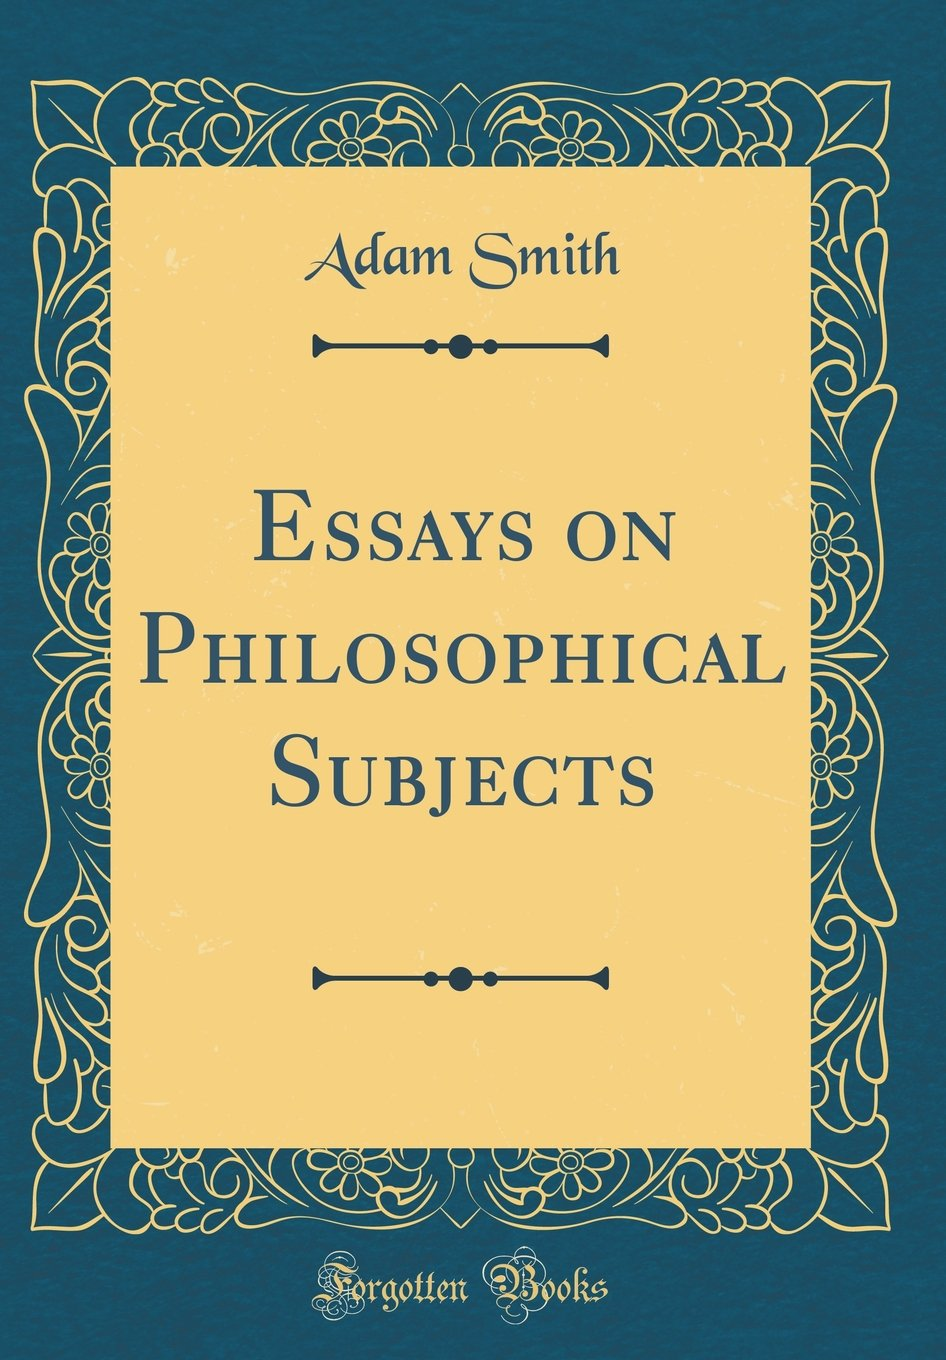 007 Rddwarl Essays On Philosophical Subjects Essay Best Smith Pdf Full